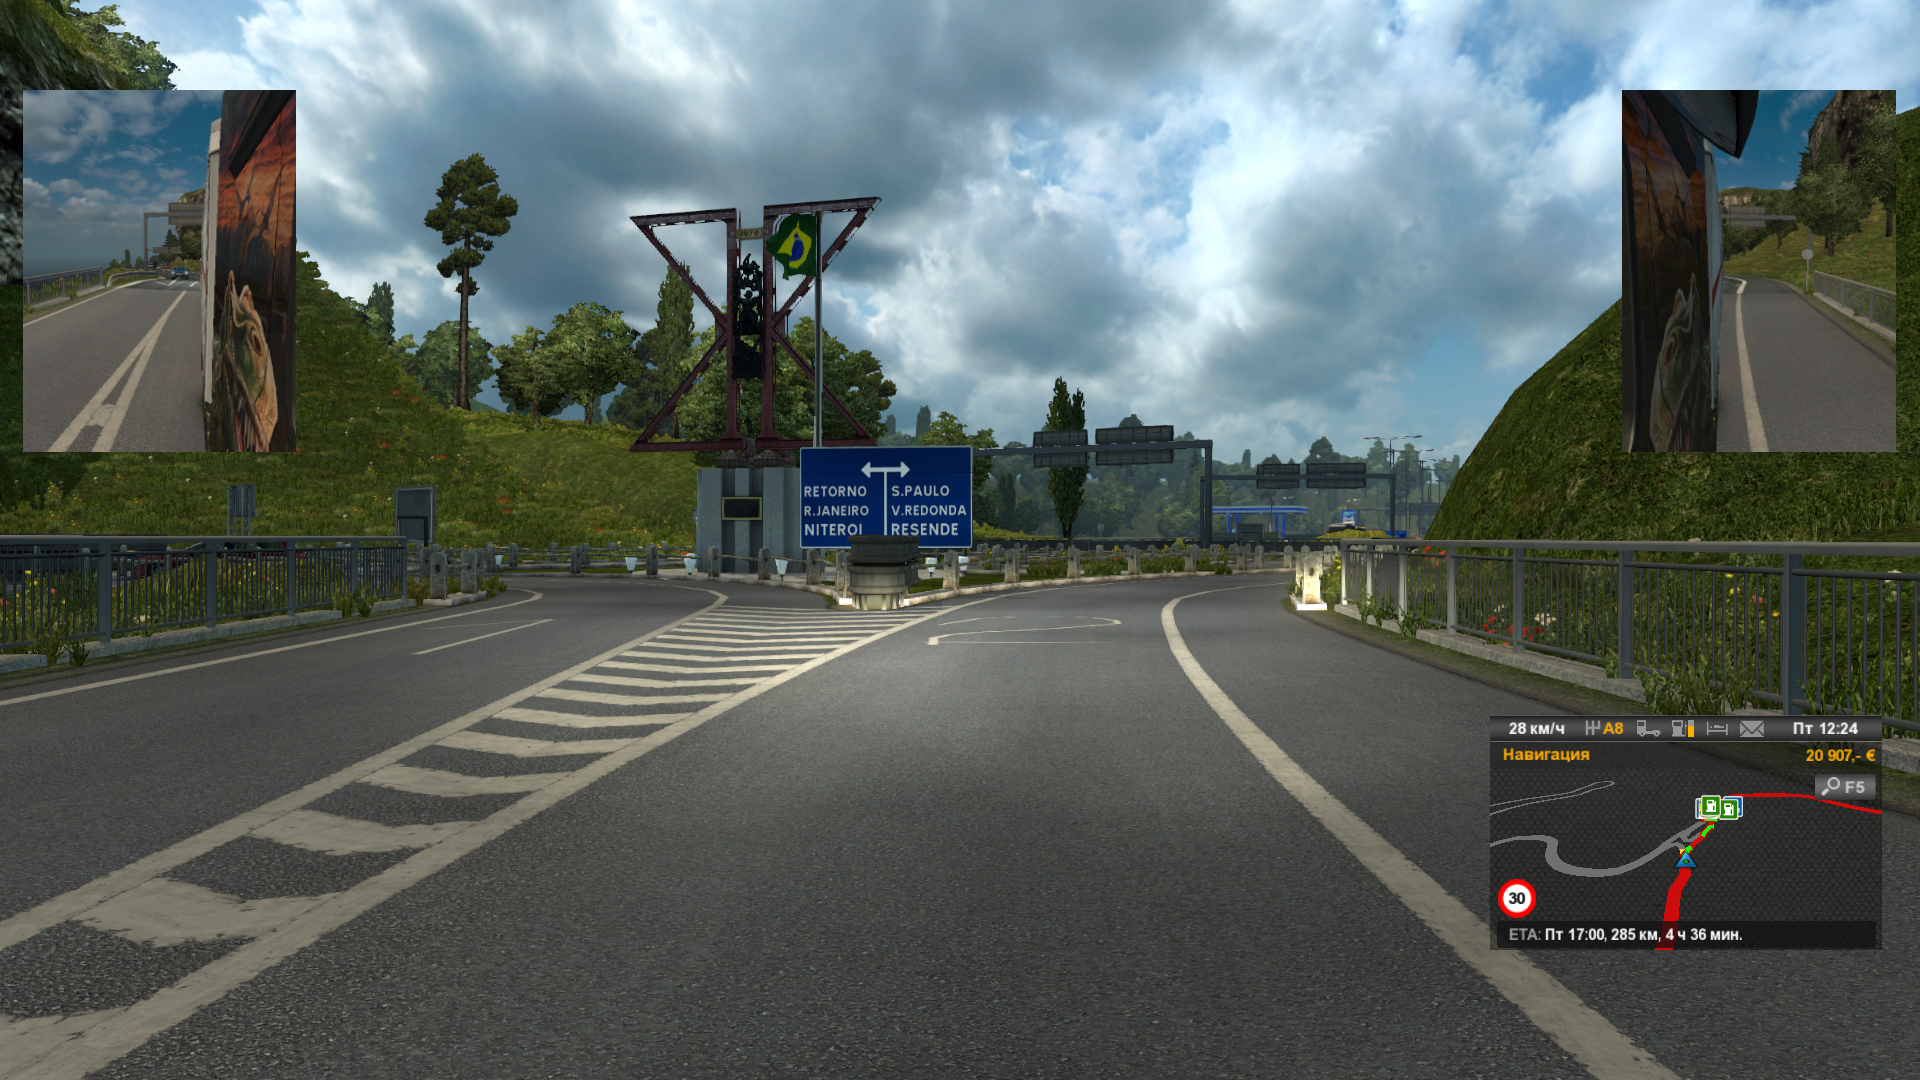 ets2_00024.png - -